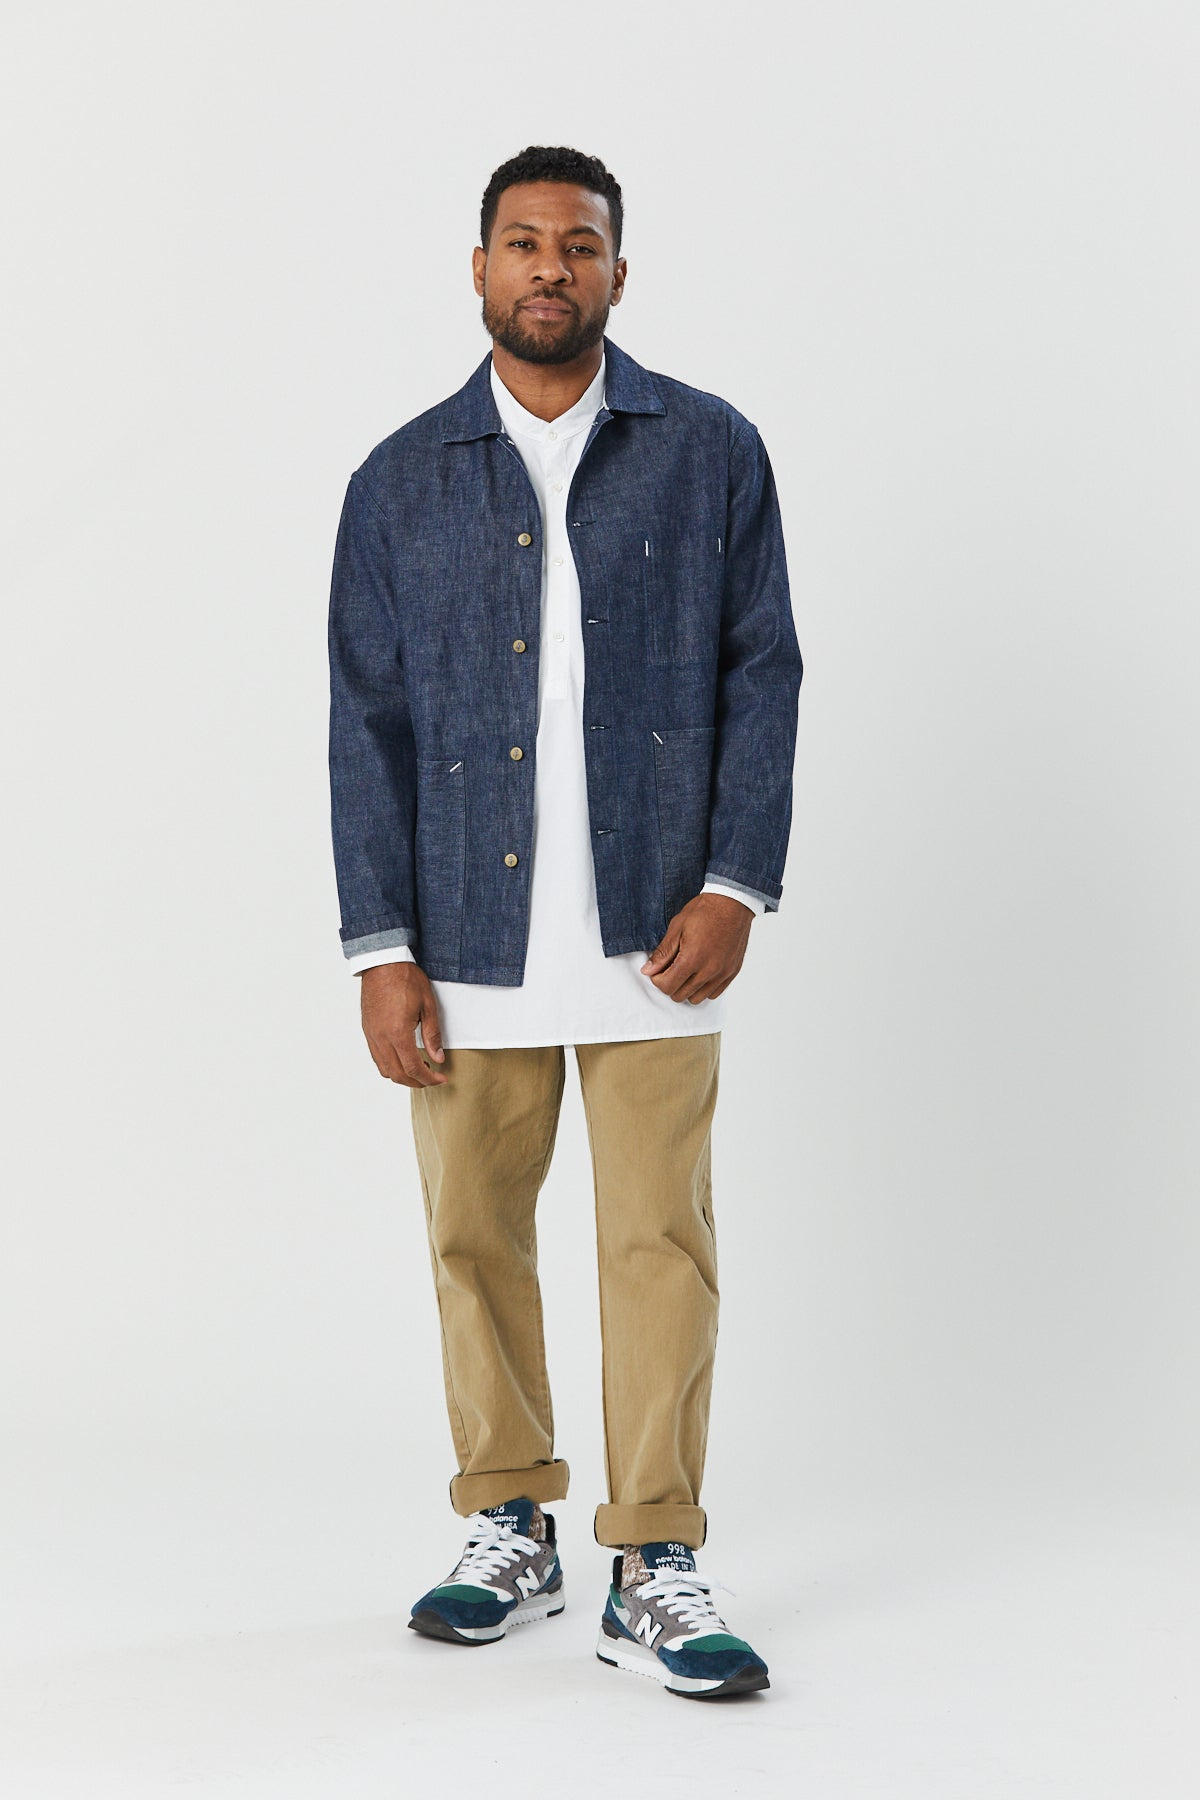 STATION JACKET IN INDIGO - Fortune Goods